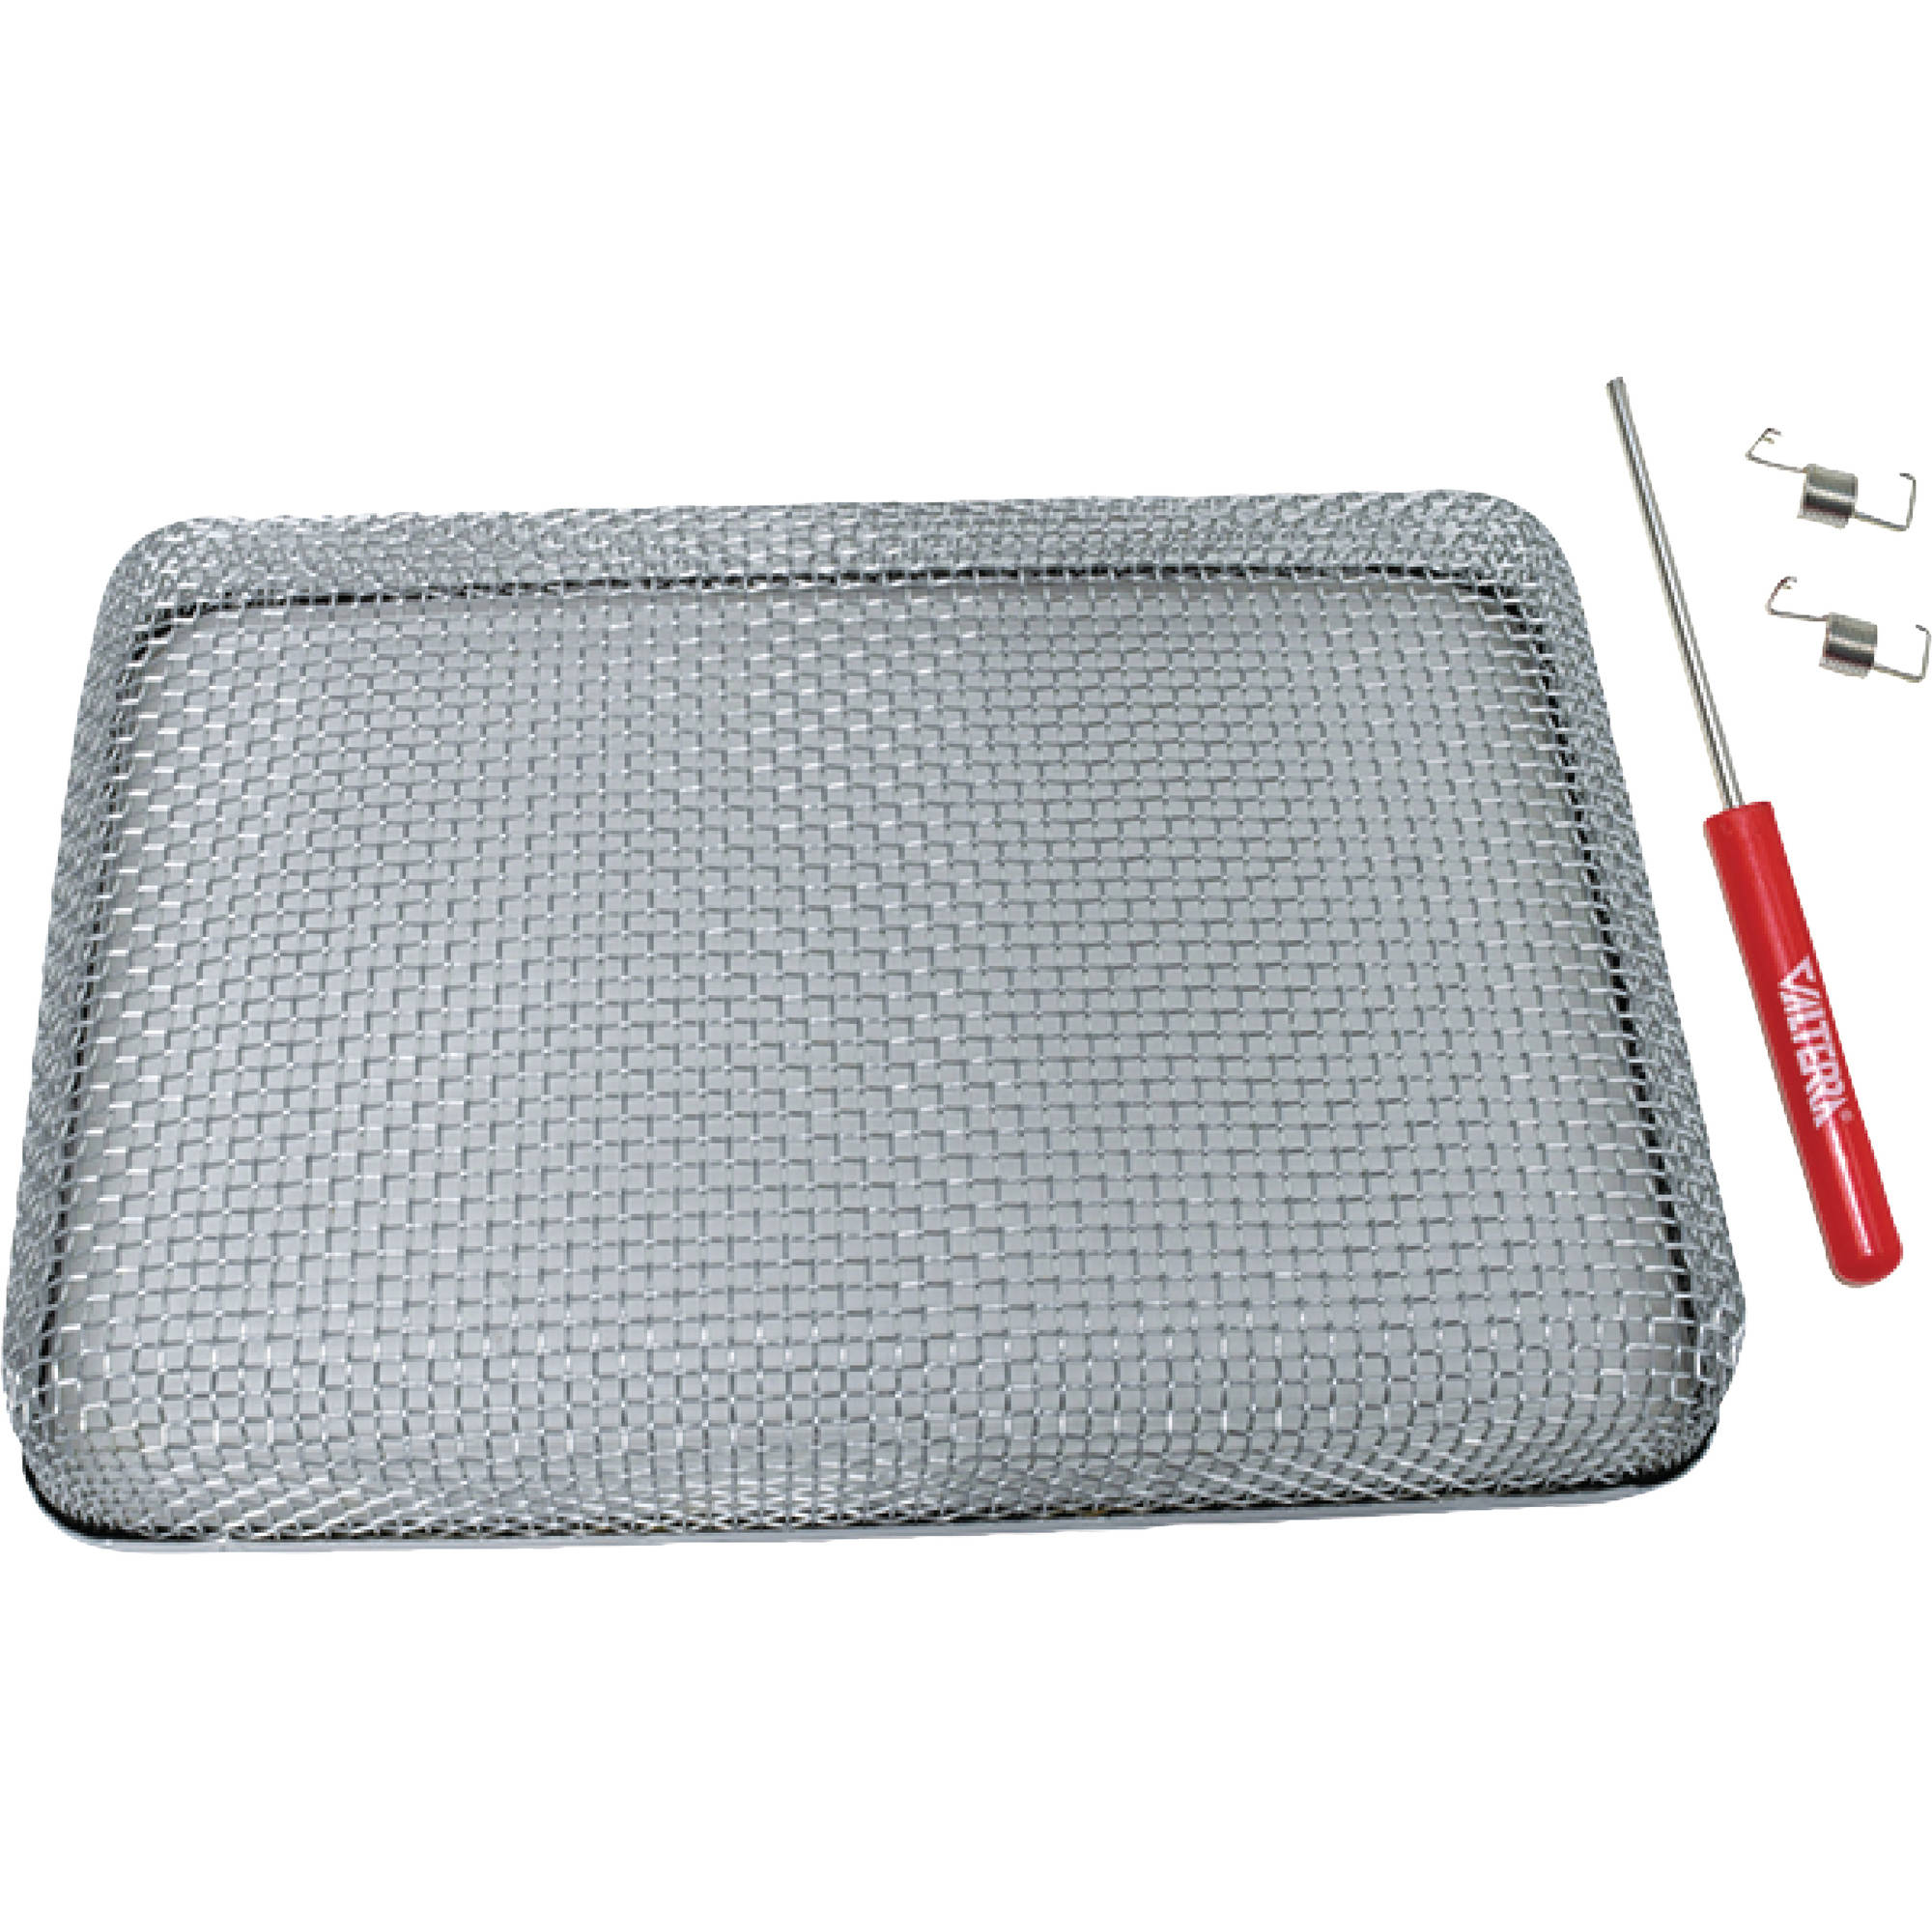 Valterra A10-1320VP Stainless Steel Bug Screen for RV Water Heater Vent & Fits Atwood 6 & 10 Gal & Suburban 6 Gal Models